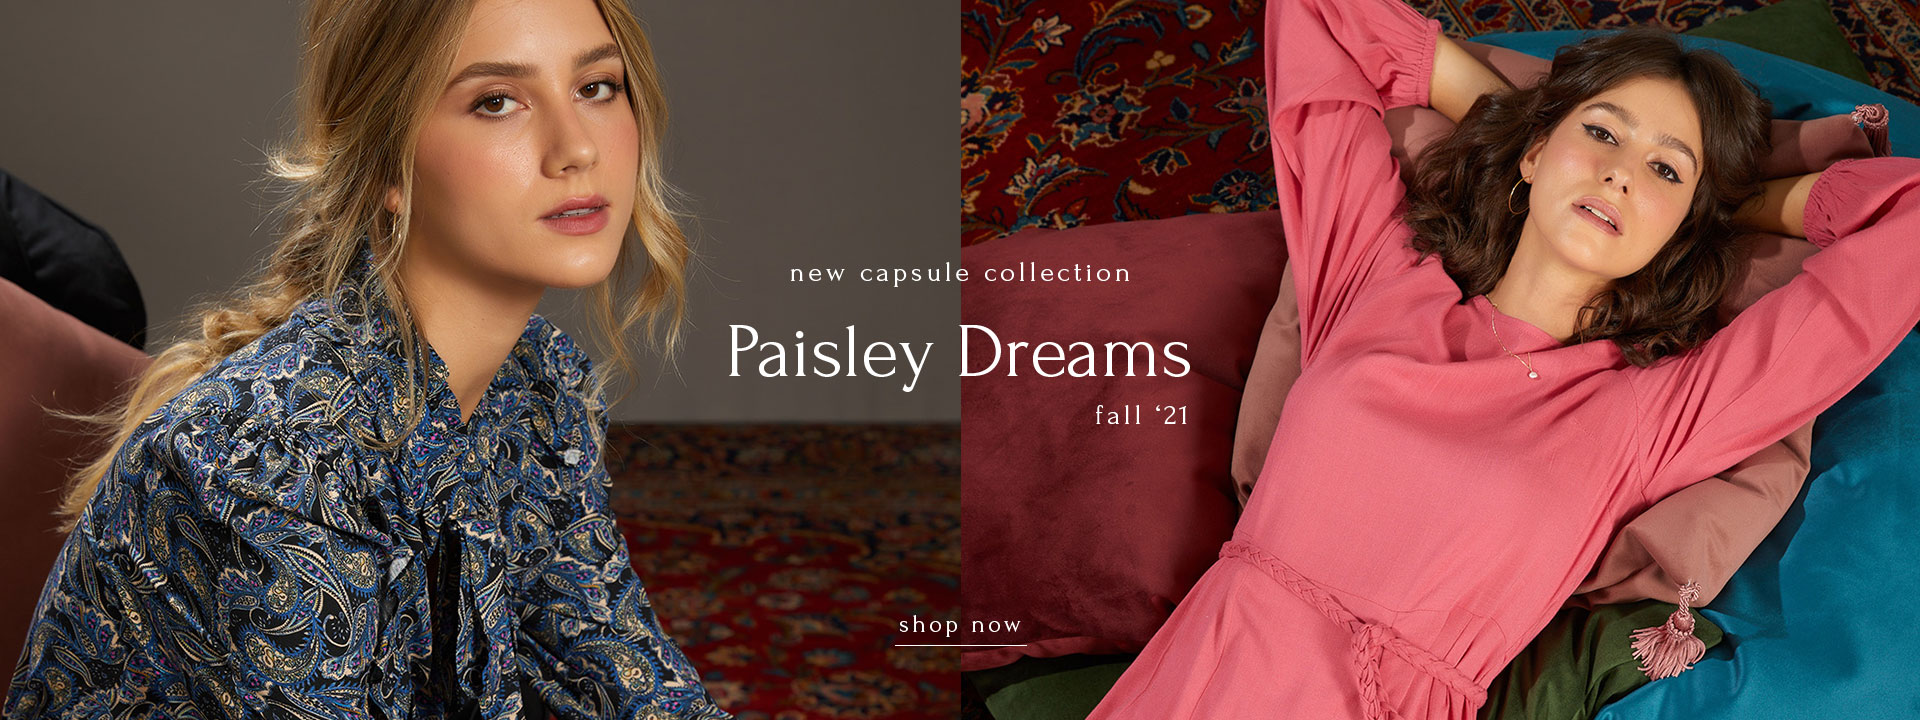 Paisley Dreams